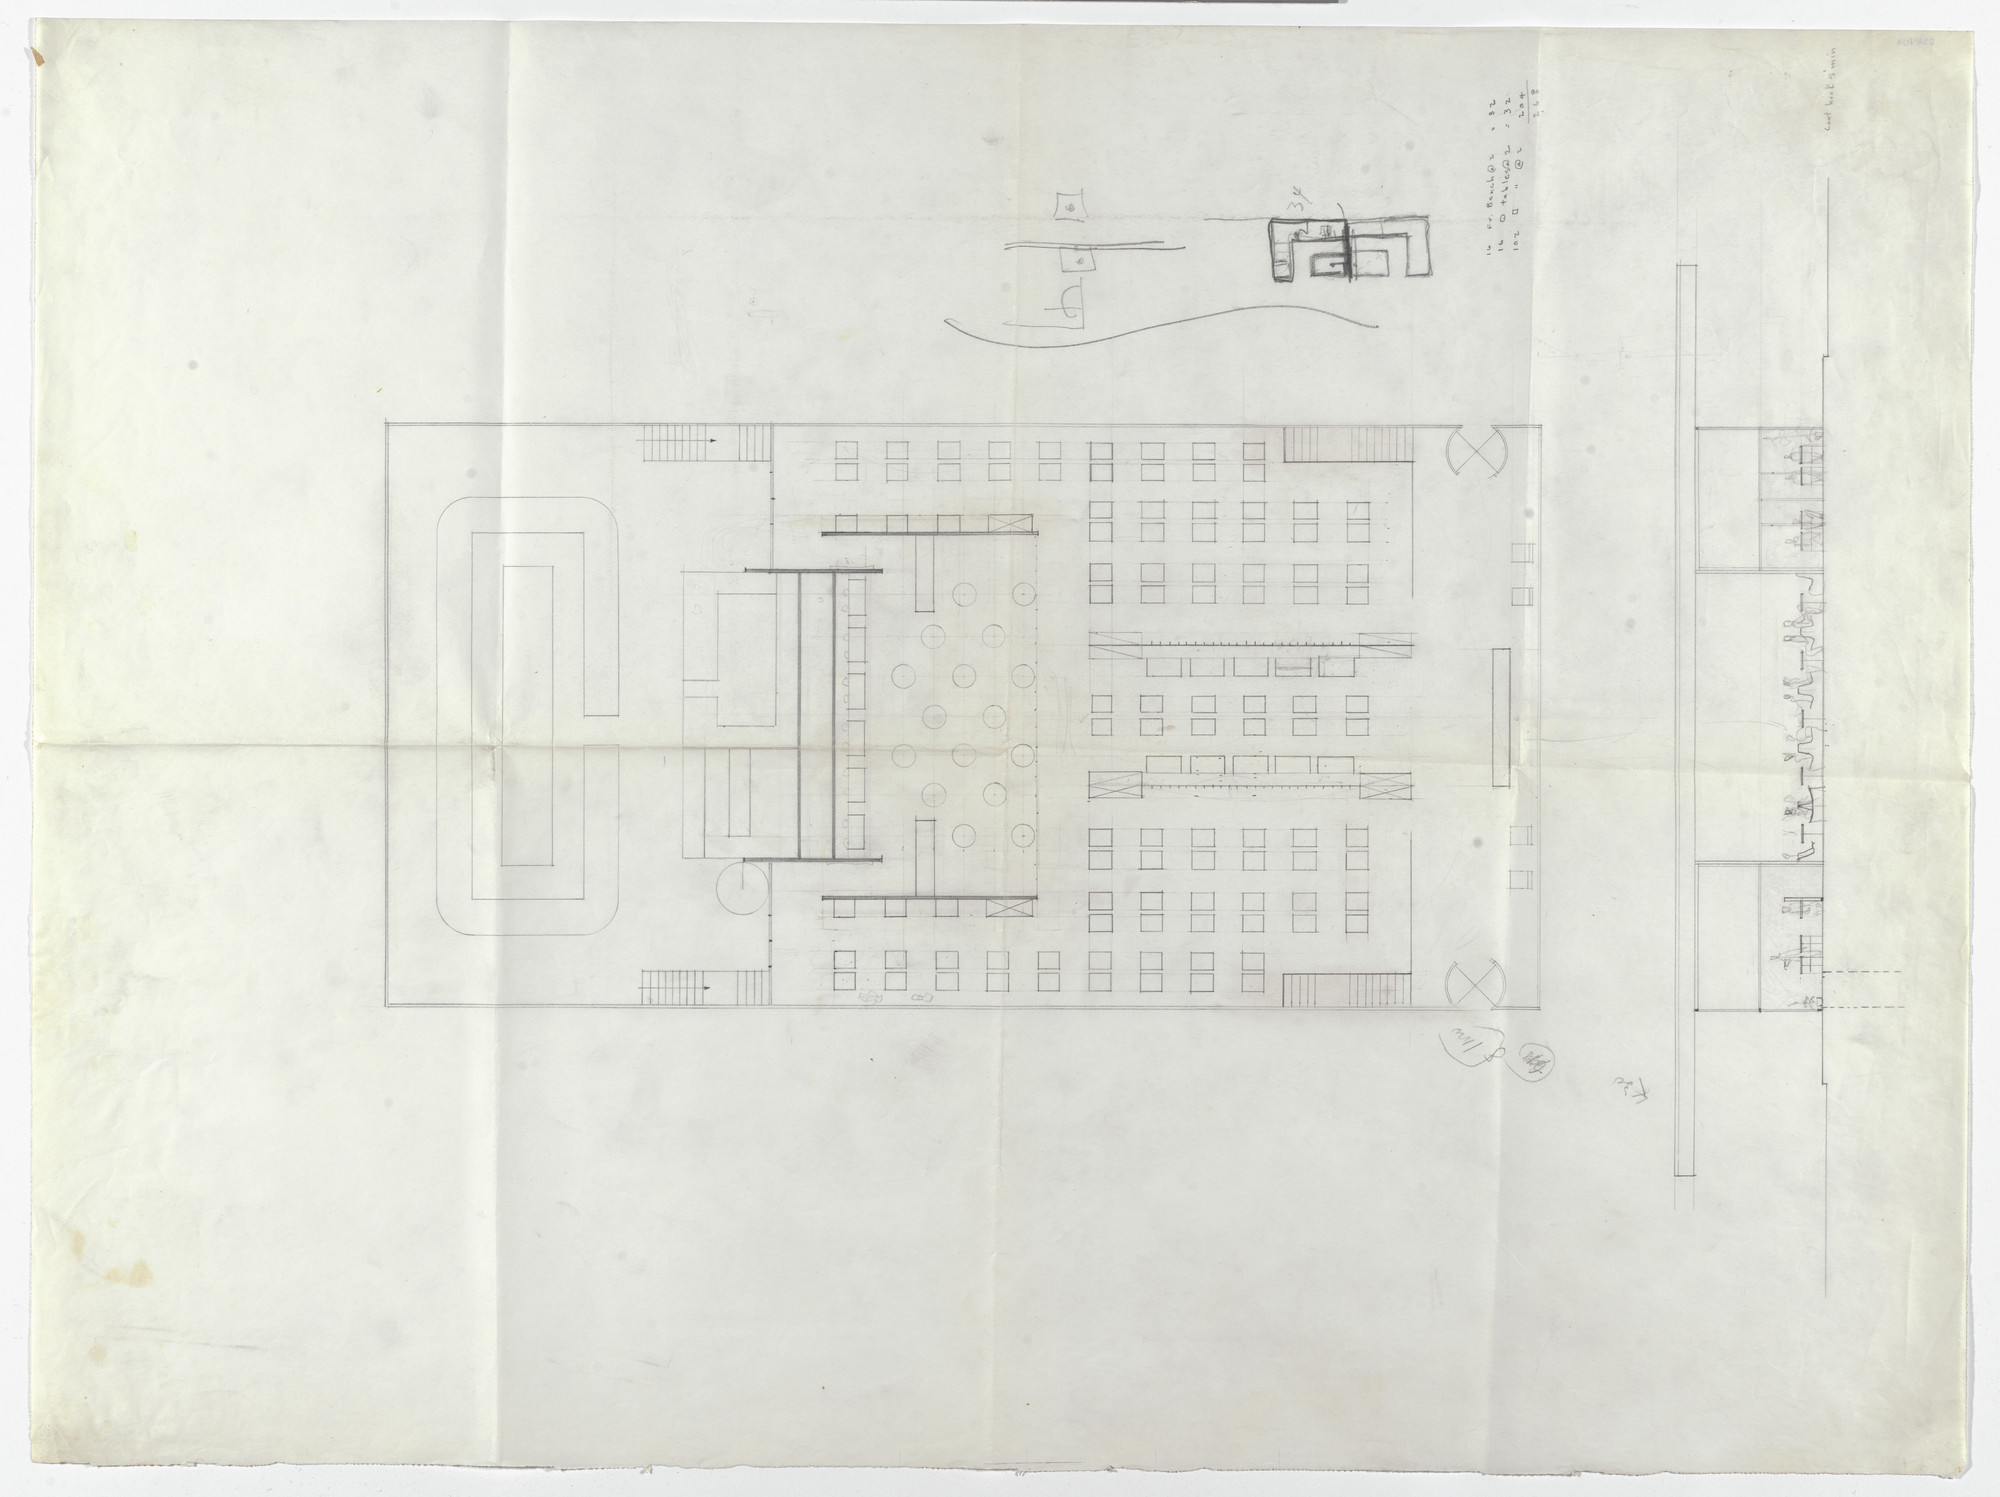 Ludwig Mies Van Der Rohe Cantor Drive In Restaurant Indianapolis Schematic Floor Plan And Elevation With Seating Layout C 1945 50